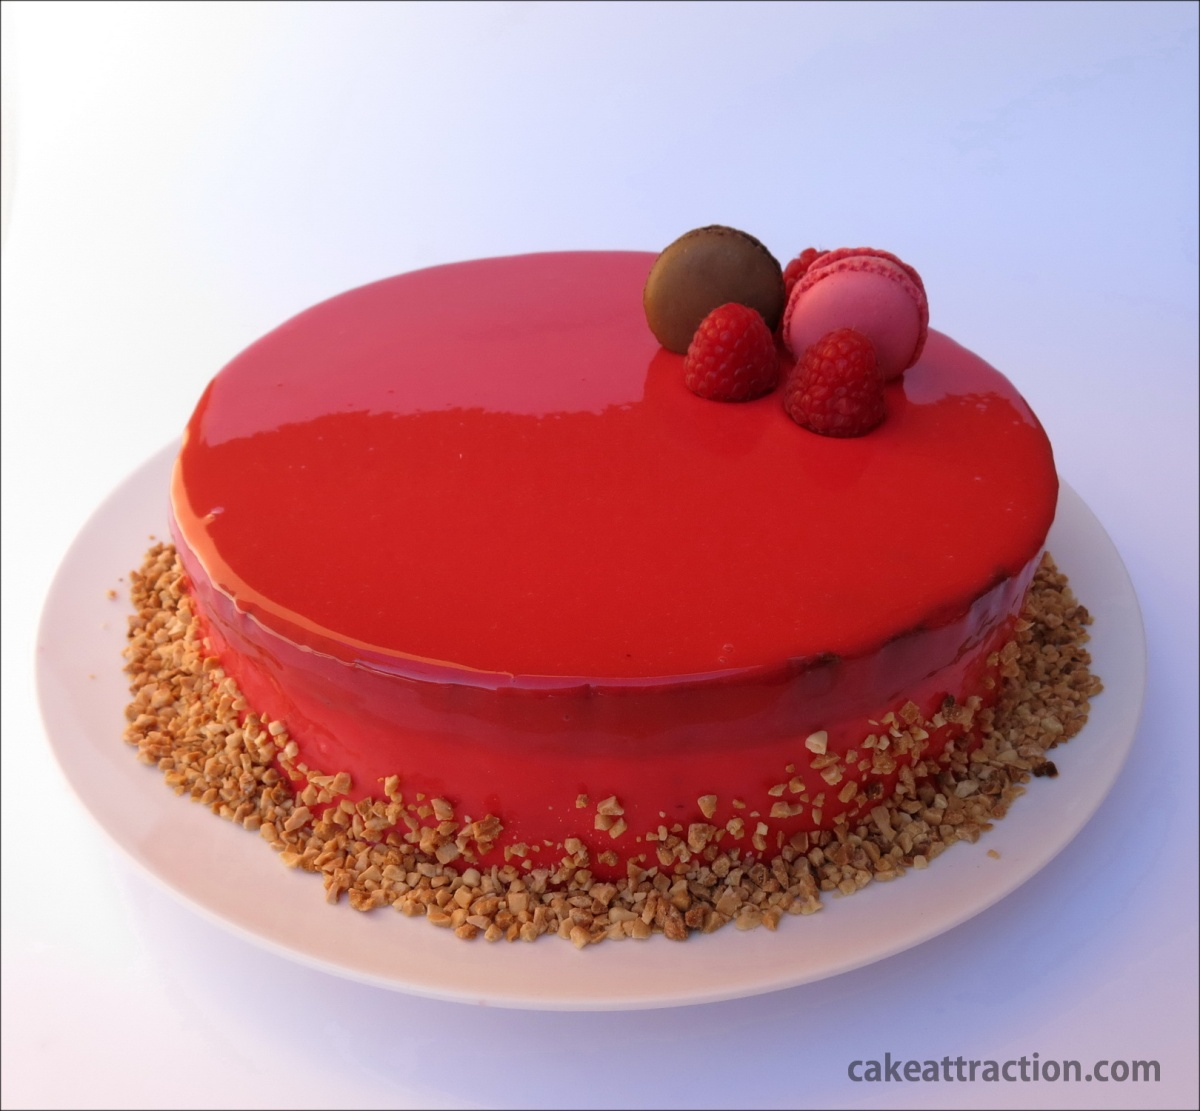 Mousse de chocolate y frambuesa con glaseado espejo rojo for Decoracion espejo en tortas